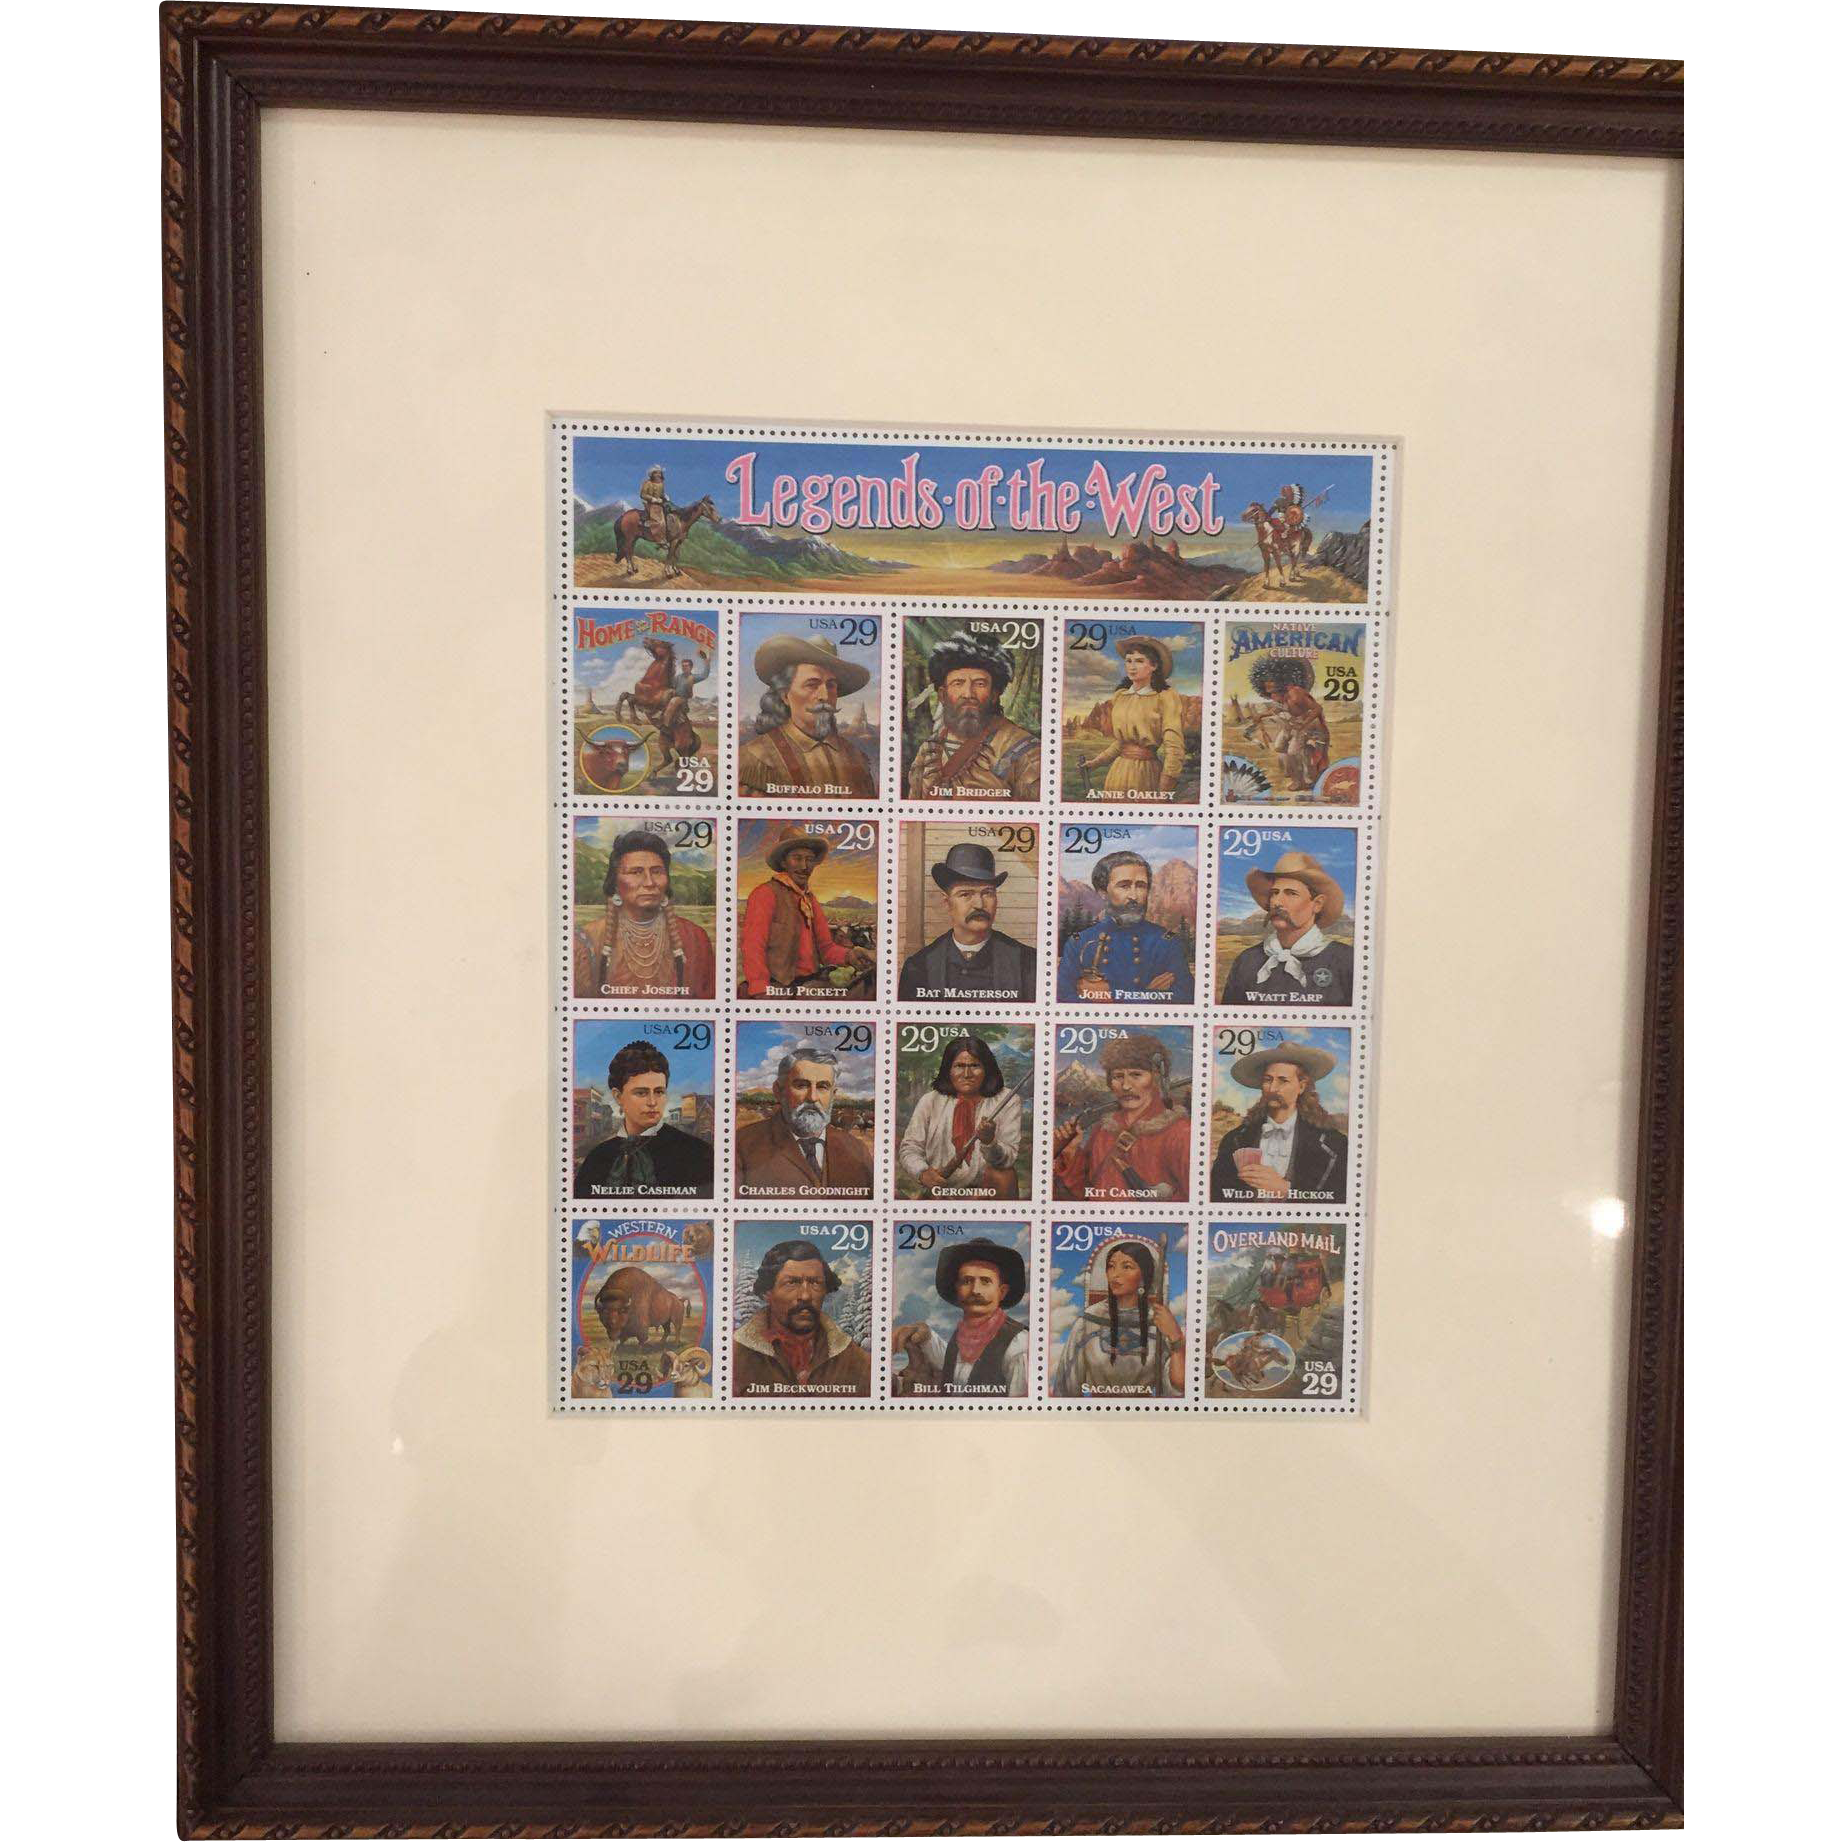 Legends Of The West Stamps, Framed & Matted